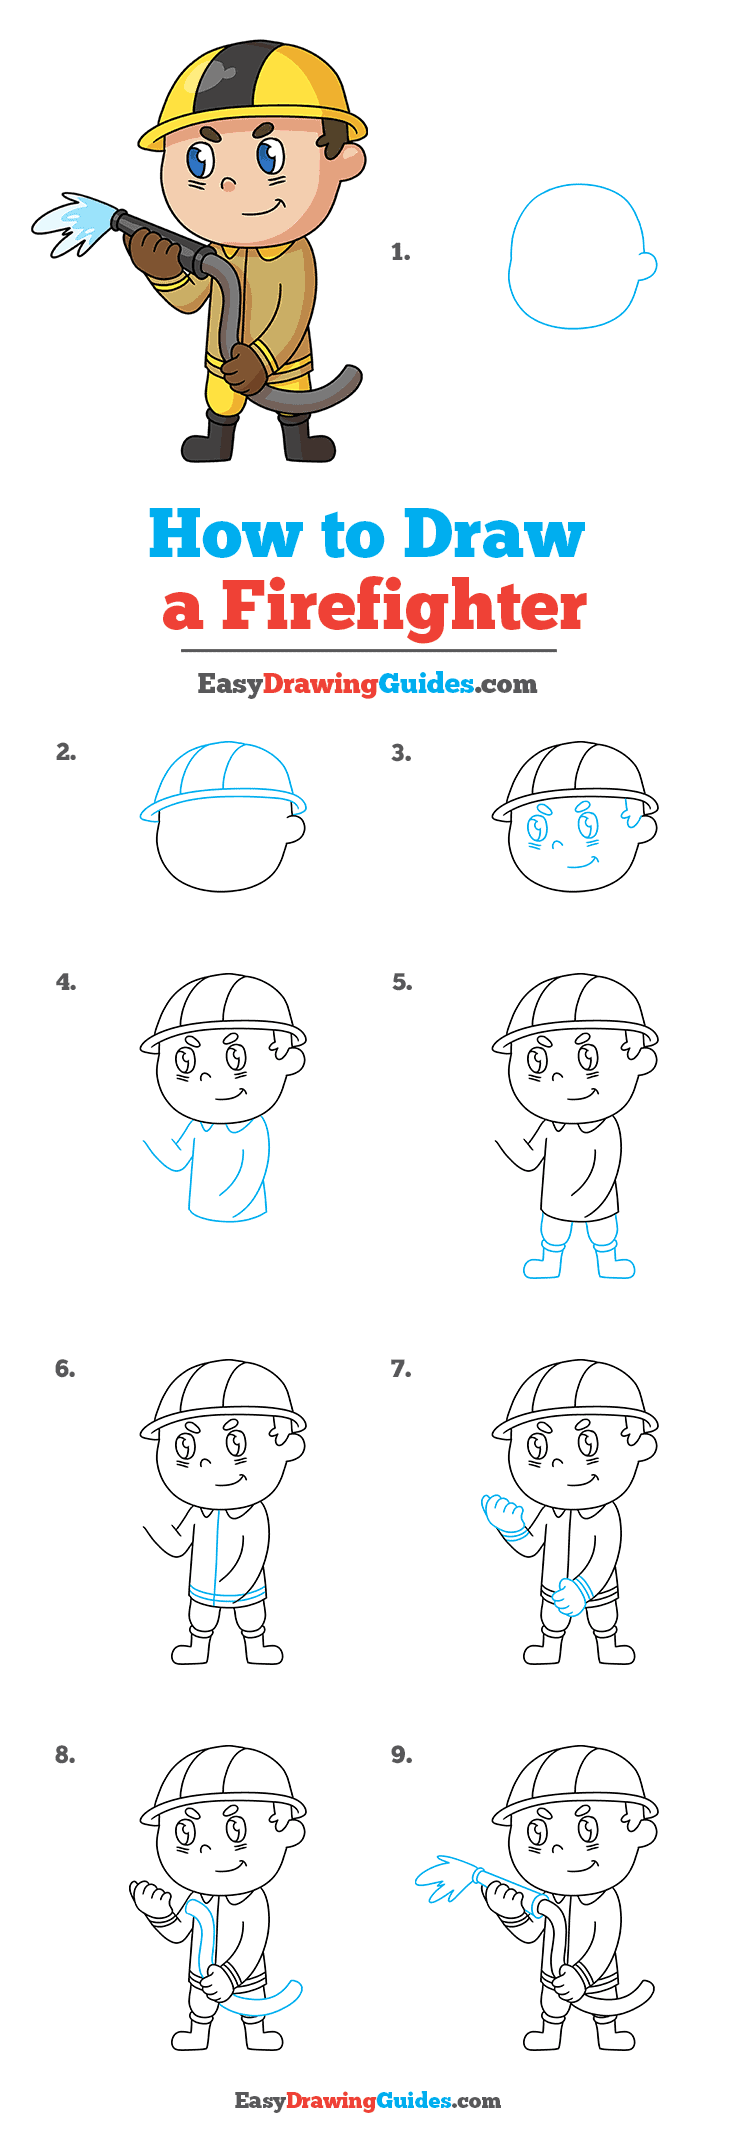 How to Draw Firefighter